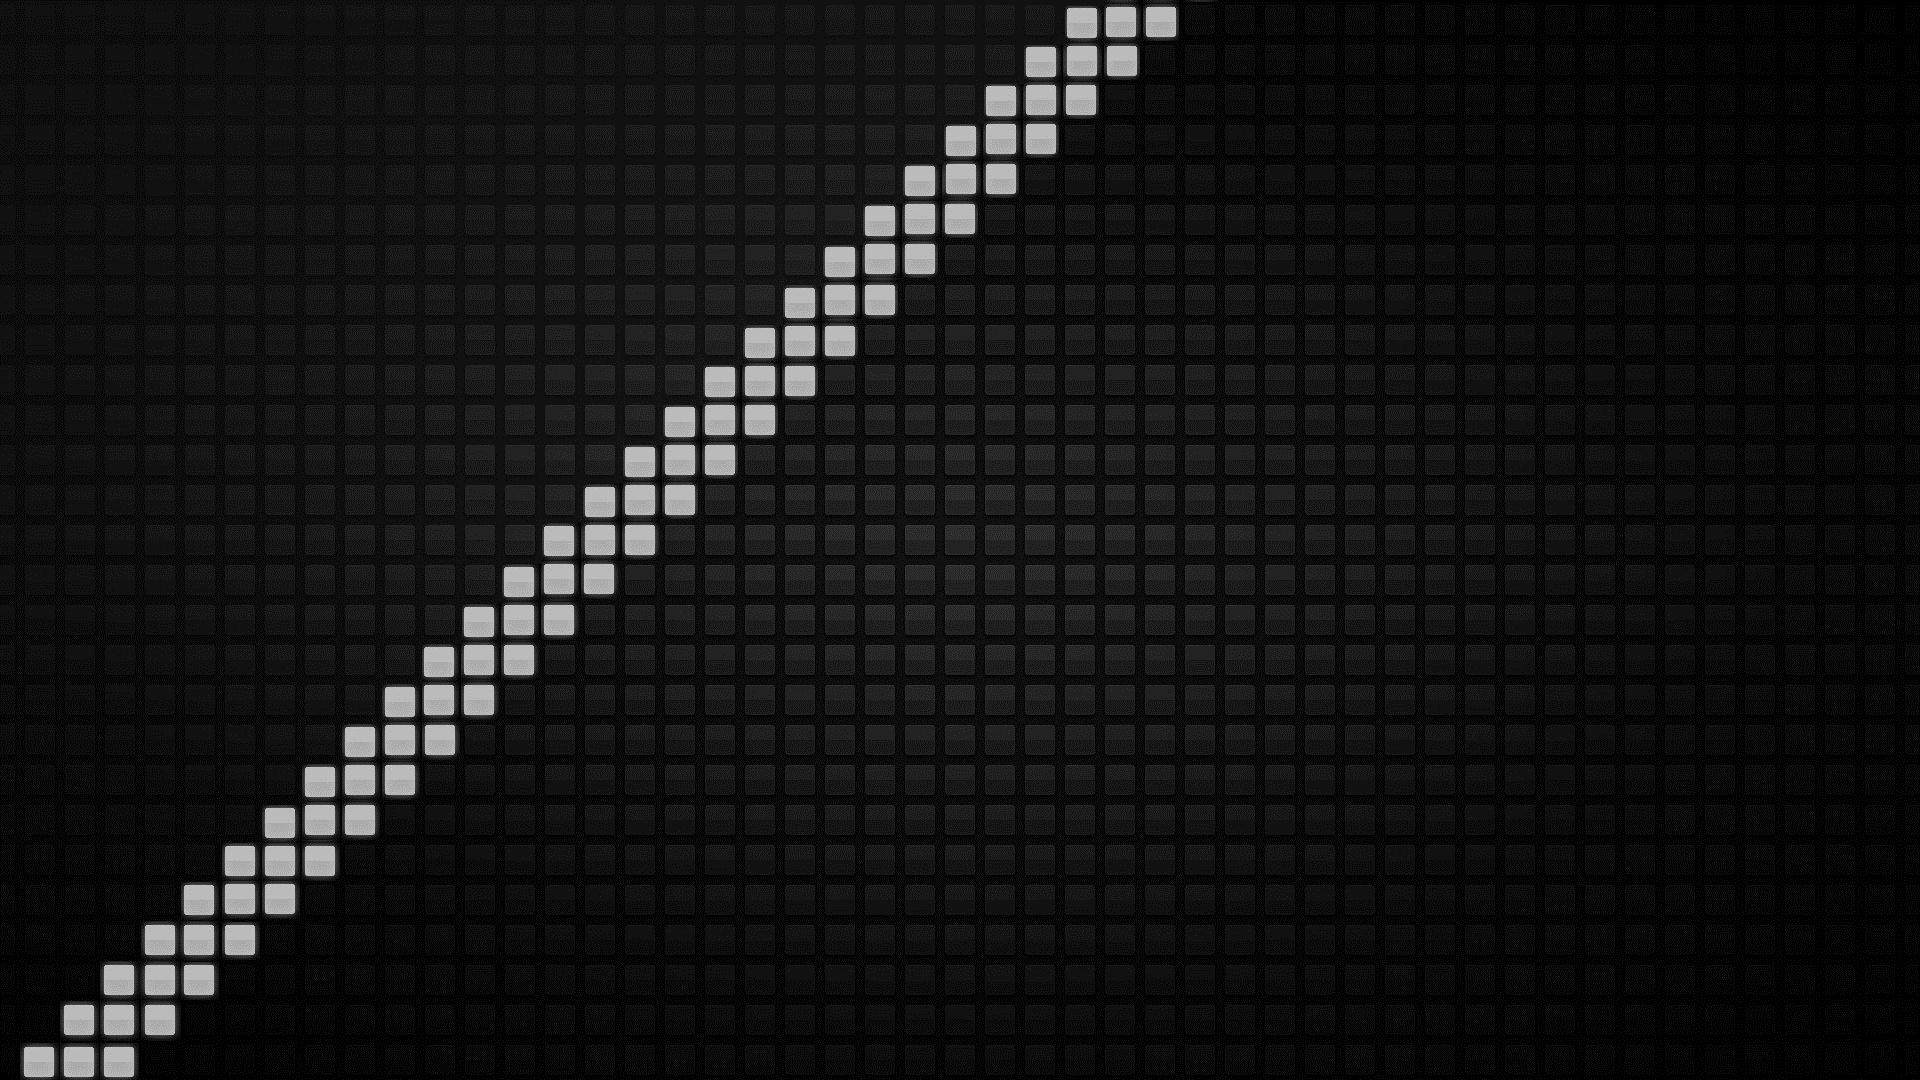 Black Wallpapers High Resolution: 40 Amazing HD Black WallpapersBackgrounds For Free Download